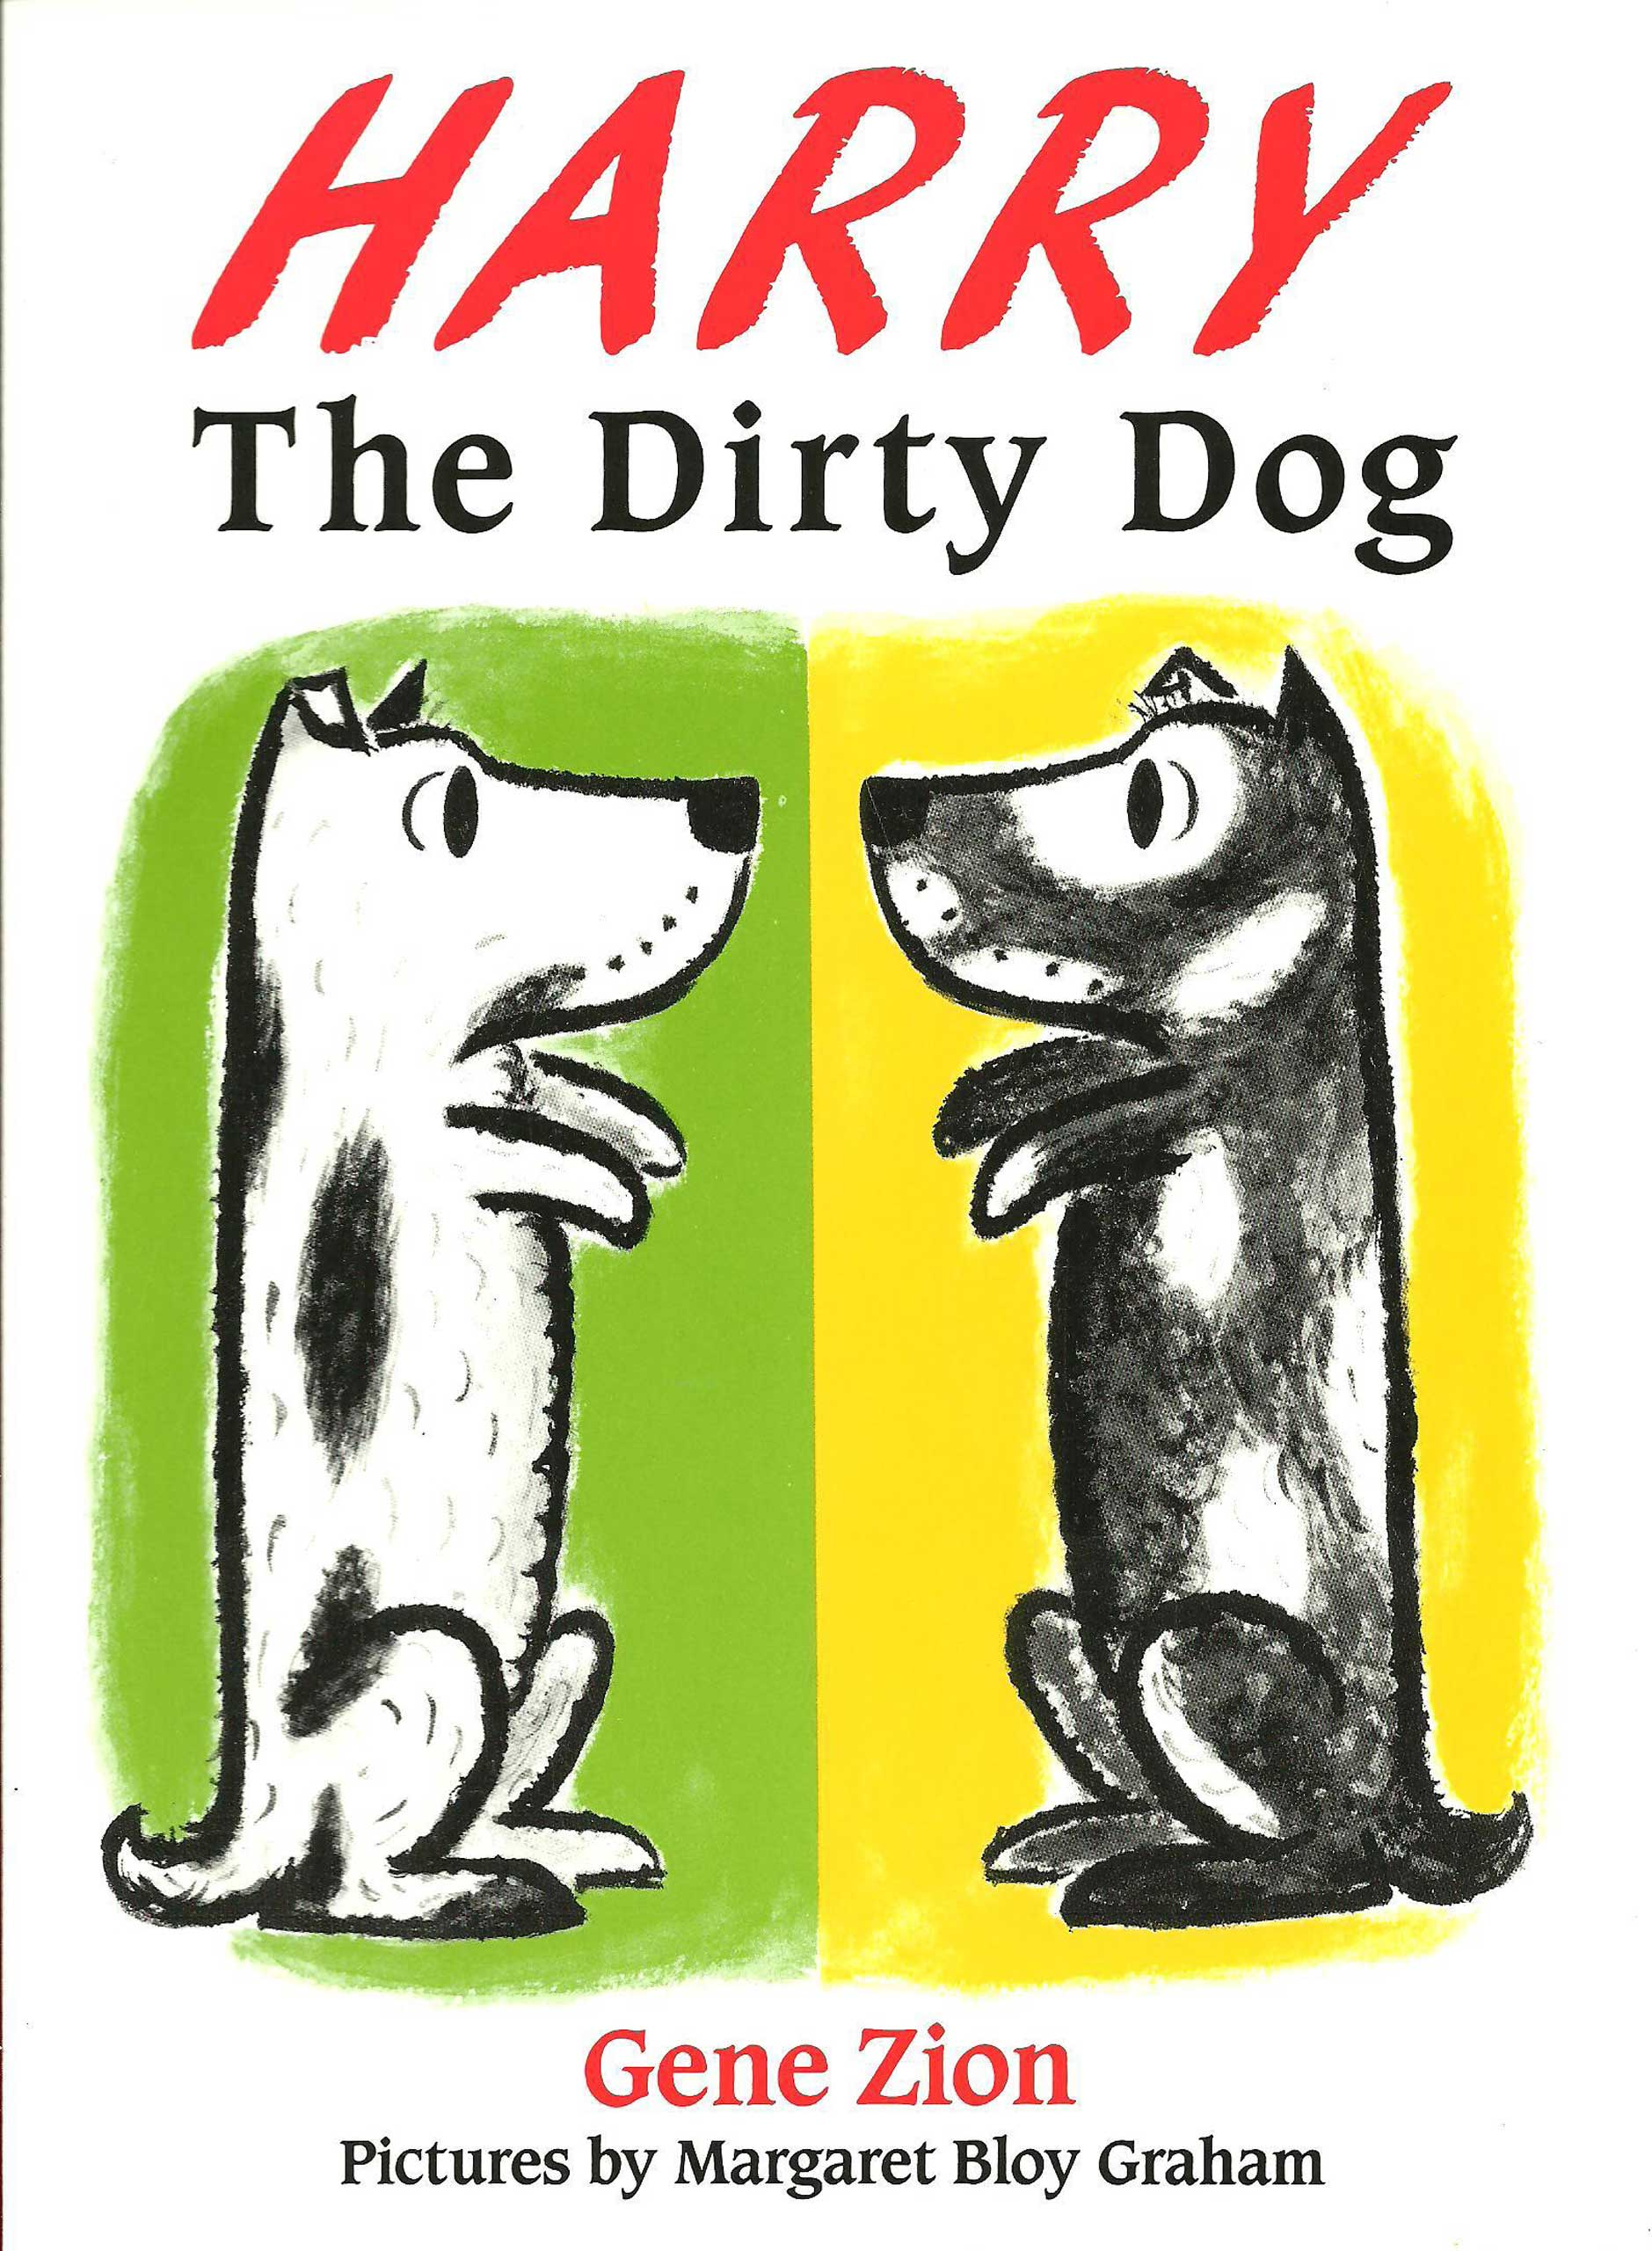 Harry the Dirty Dog, by Gene Zion, illustrations by Margaret Bloy Graham.                                                                                                                            Kids might be more eager to bathe after seeing this mischievous dog get so dirty his own family can't recognize him.                                                                                                                             Buy now: Harry the Dirty Dog